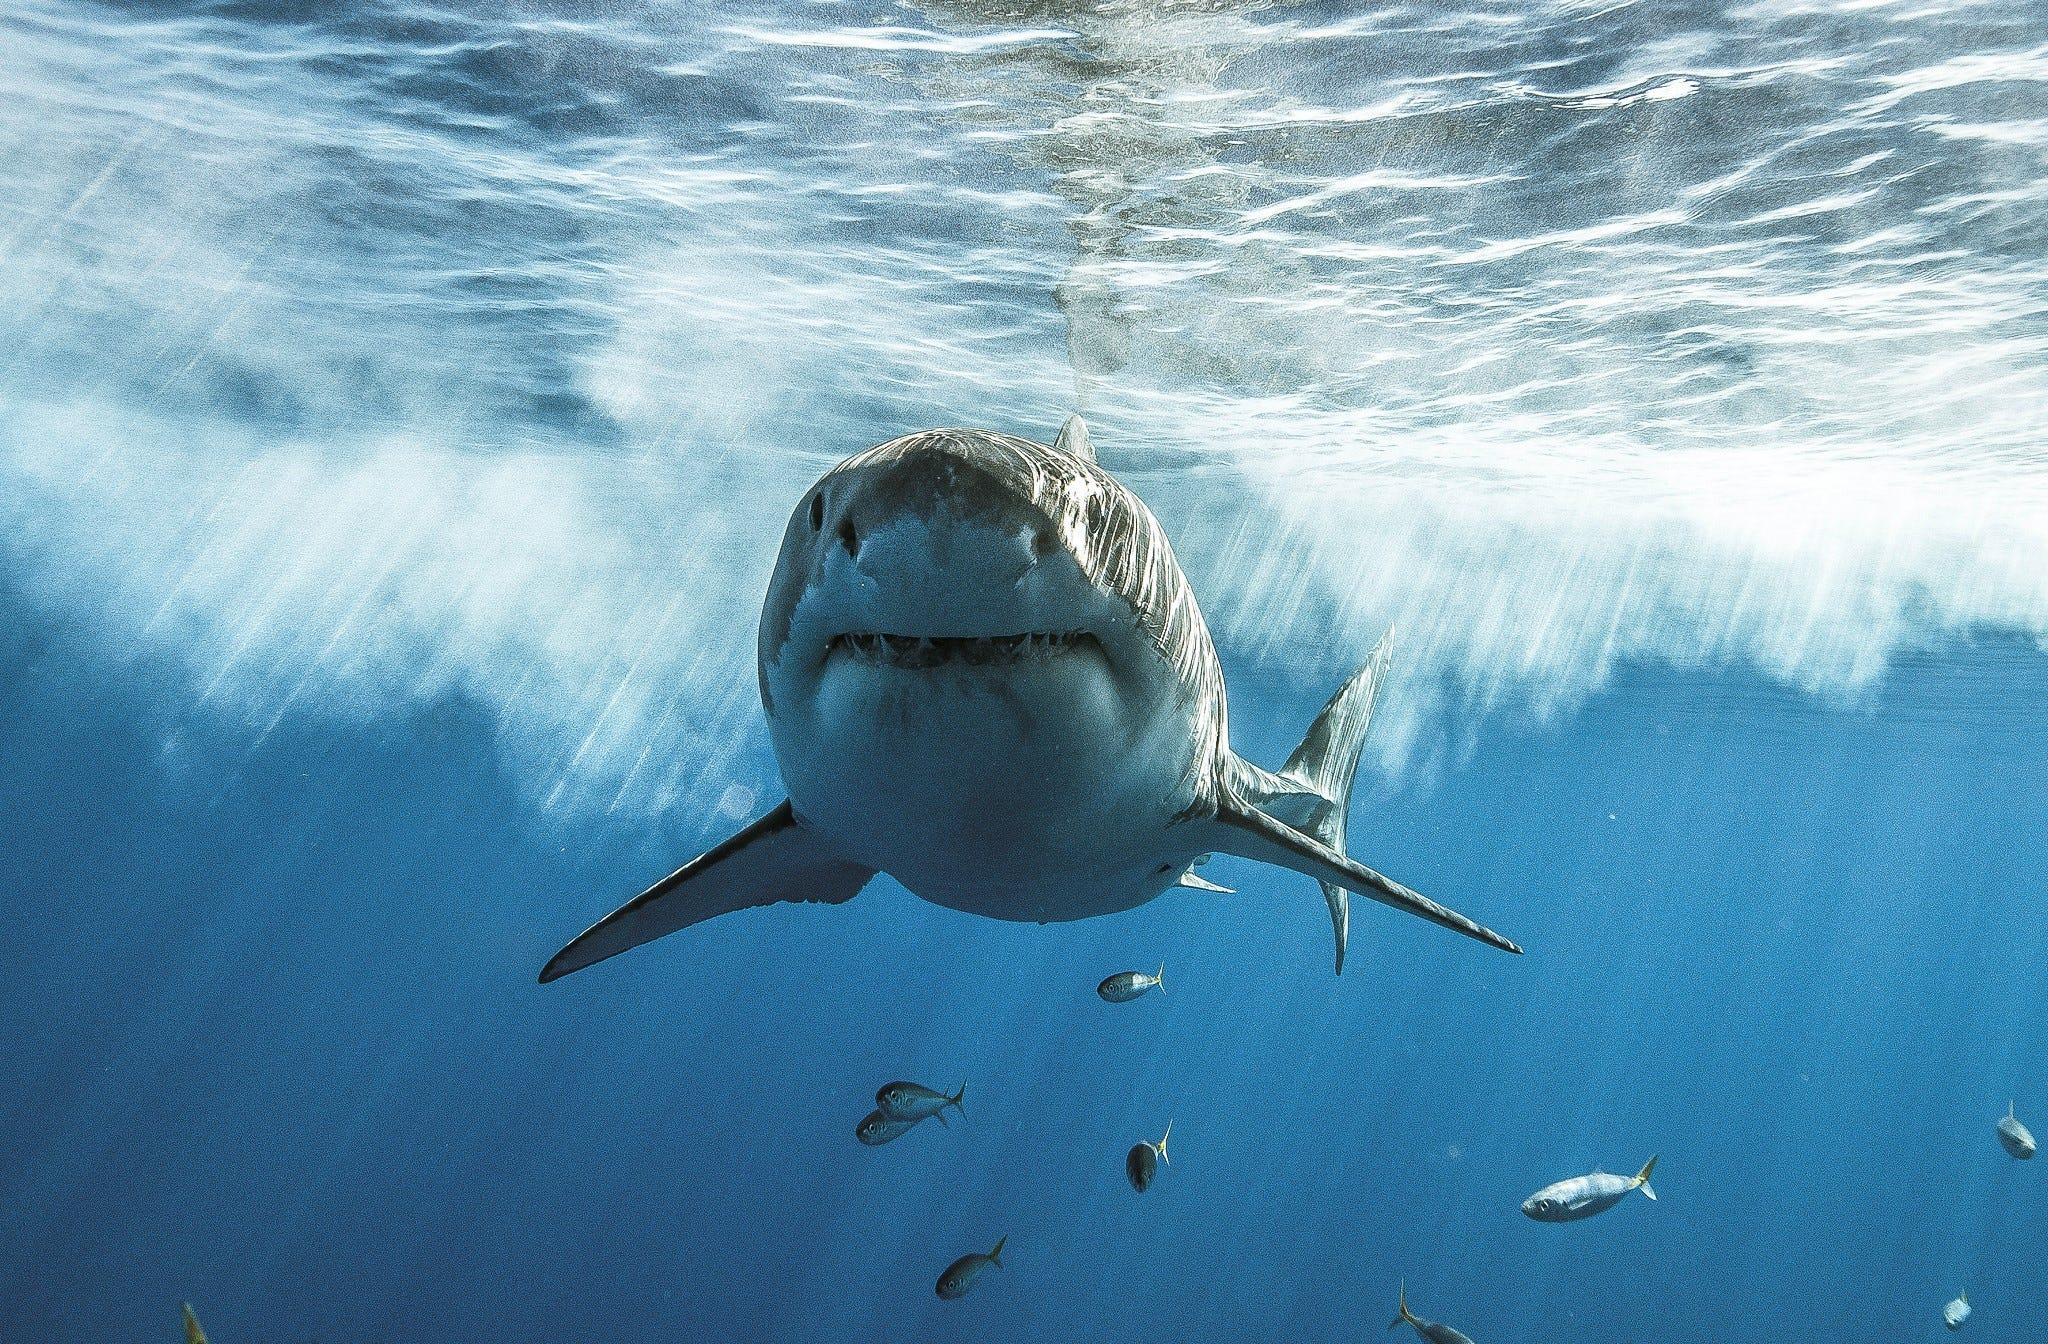 Shark attacks: How to avoid them and whether shark repellents really work